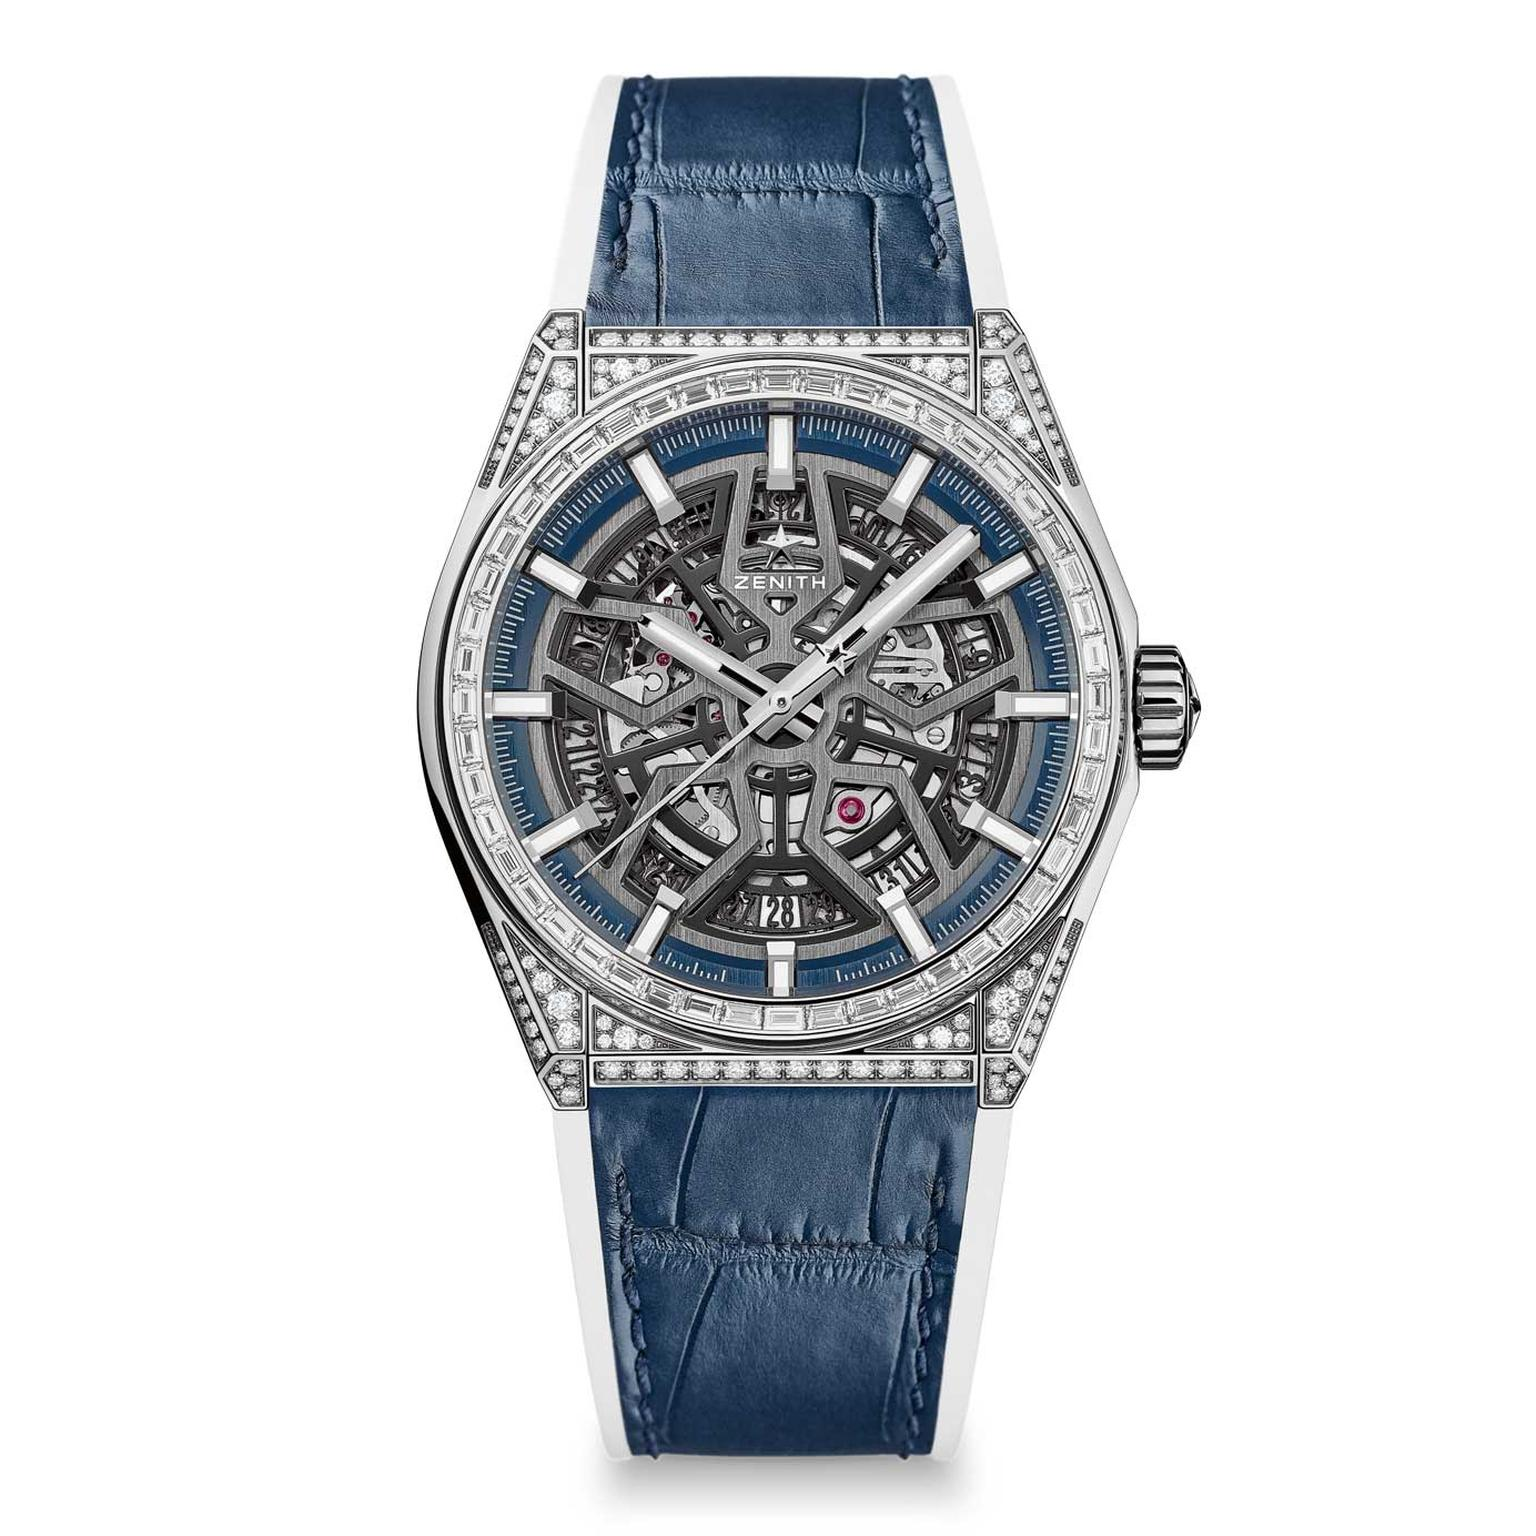 Zenith Defy Classic High Jewelry titanium diamond watch